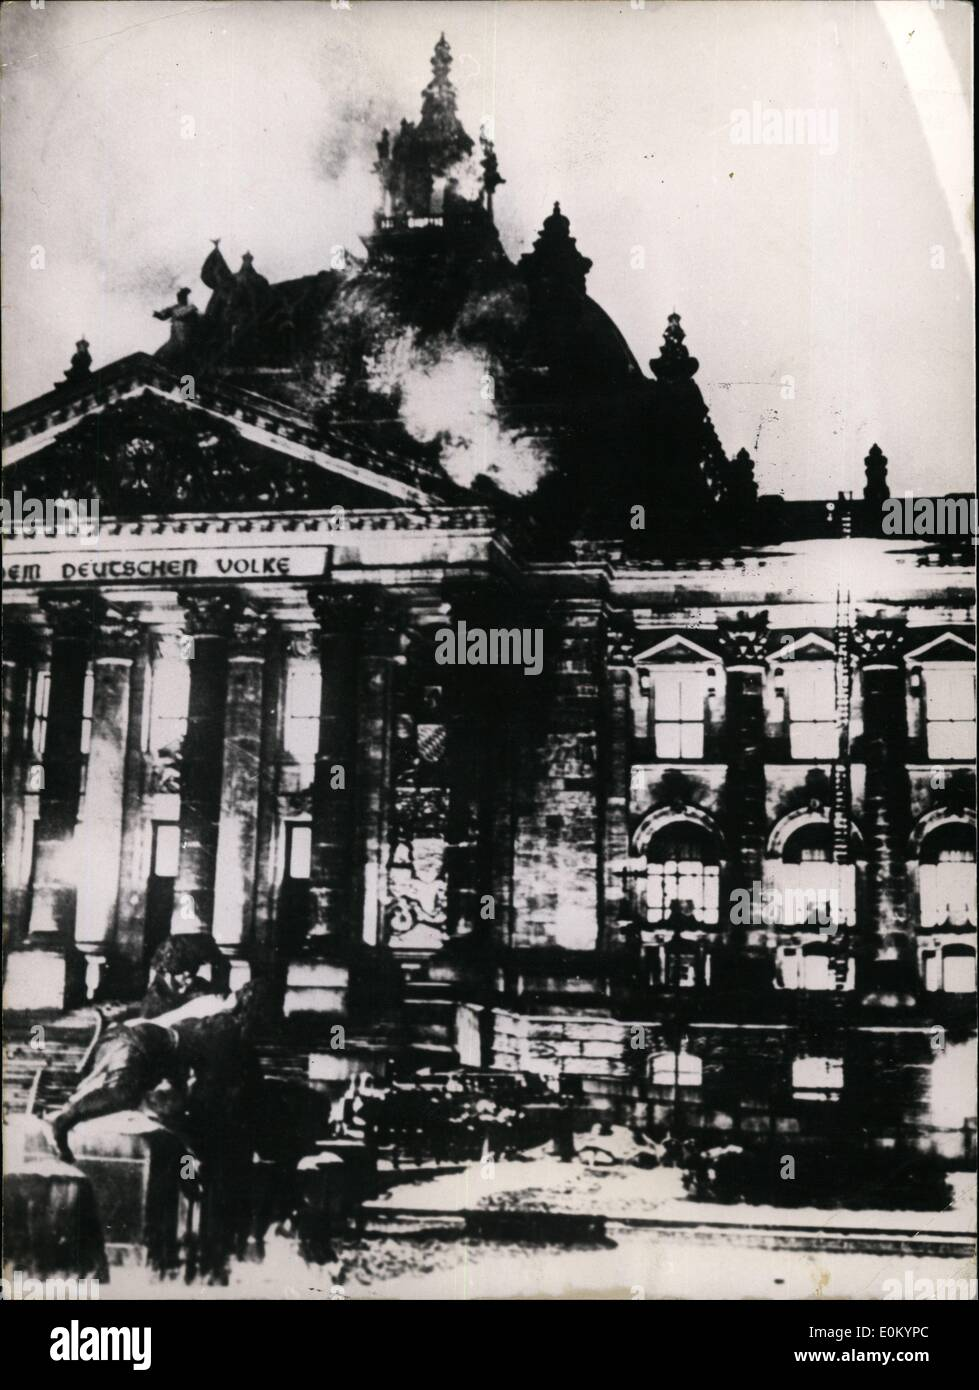 Feb. 02, 1953 - Reichstagtag burning!: When this news went through the World on February 27th, 1933, many of us took it as an omen that the new rulers of Germany has sent the parliamentary democracy at the stake. For Hitler and his followers the burning German Reichstag (building of the former German National Assembly) was the ''burning light of a new speech in world history'' a spectacle staged to announces the beginning of the Third Reich. For the democratic Germany, however, it was a taken o beginning tyranny and disaster - Stock Image